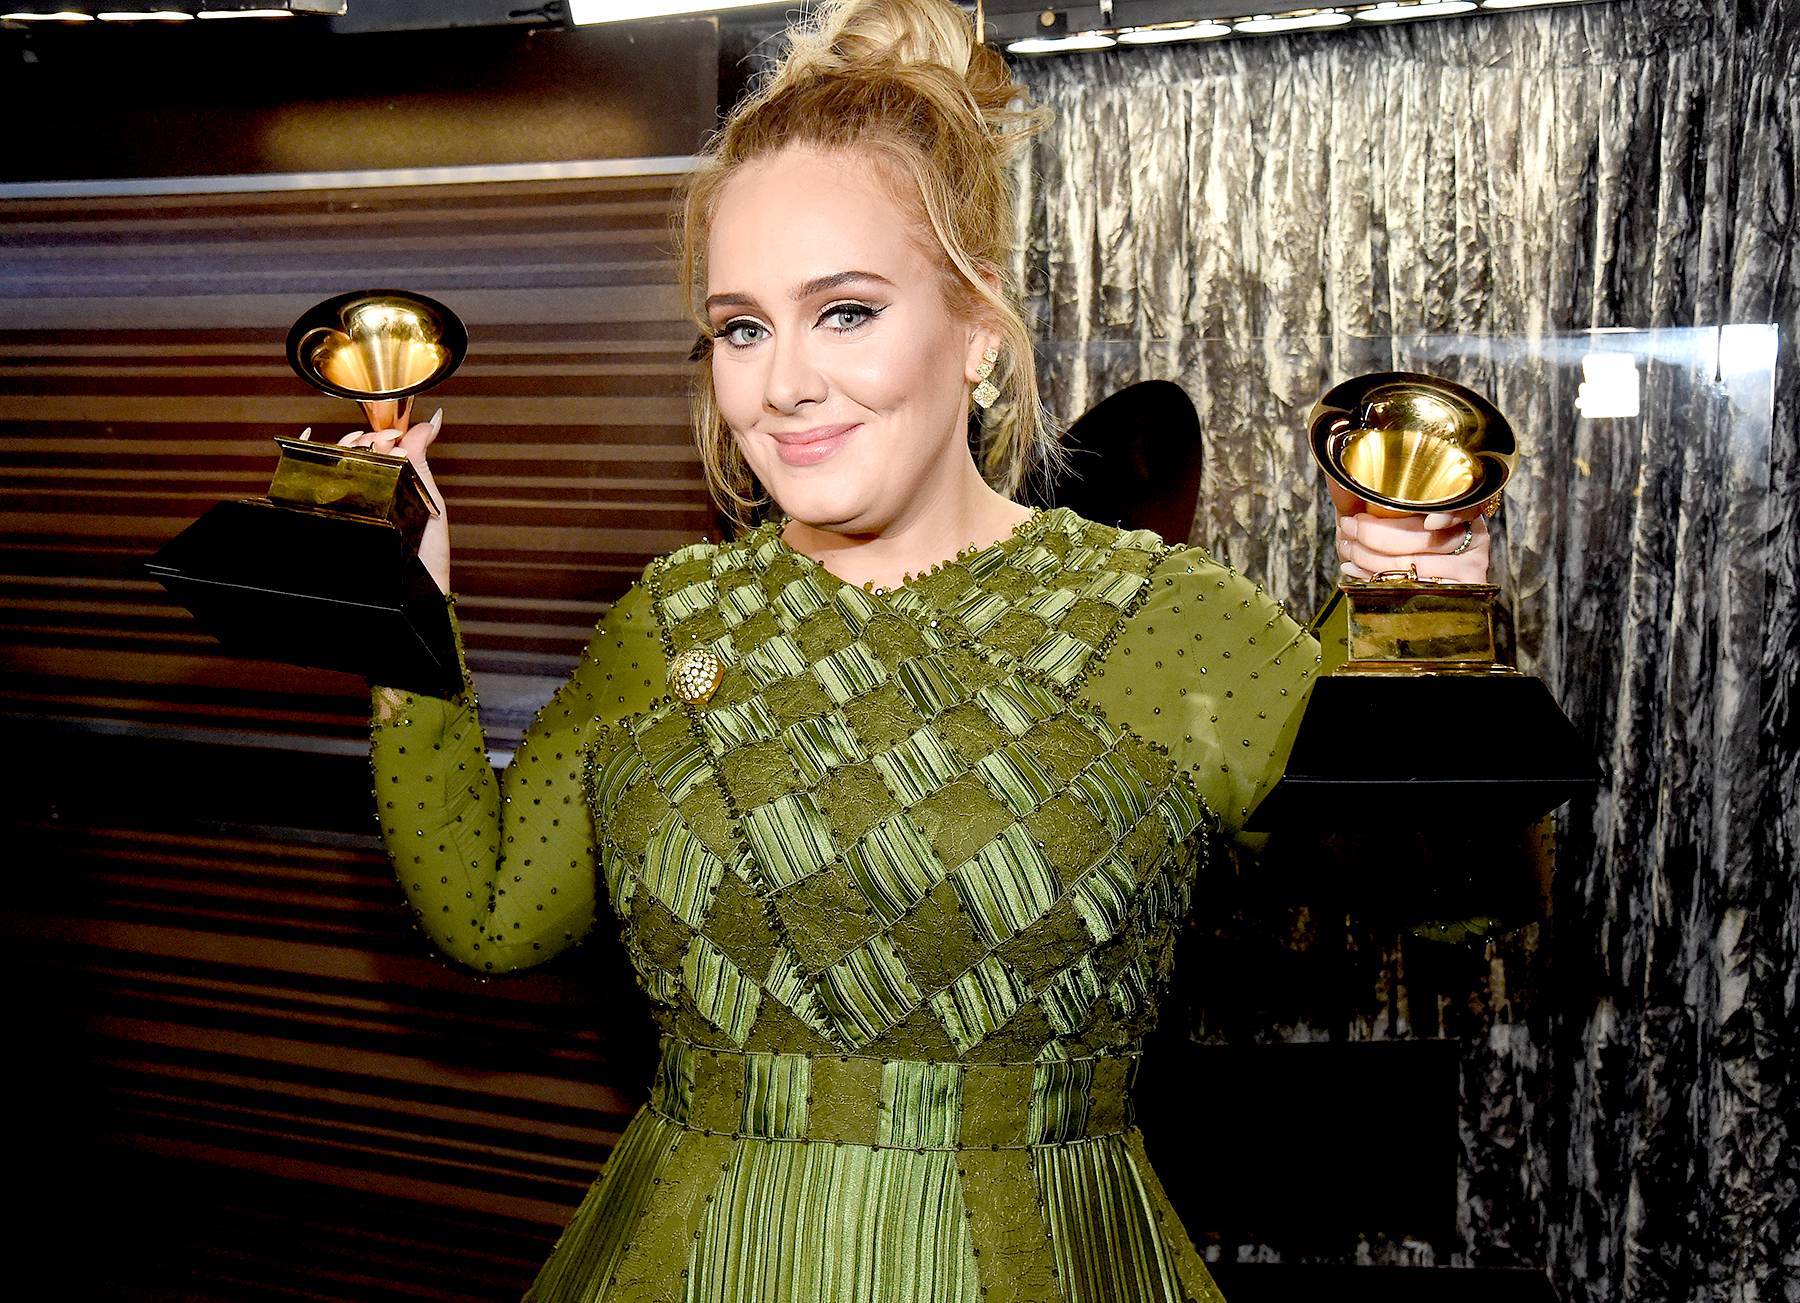 Adele attends the 59th Grammy Awards at Staples Center on Feb. 12, 2017, in Los Angeles.